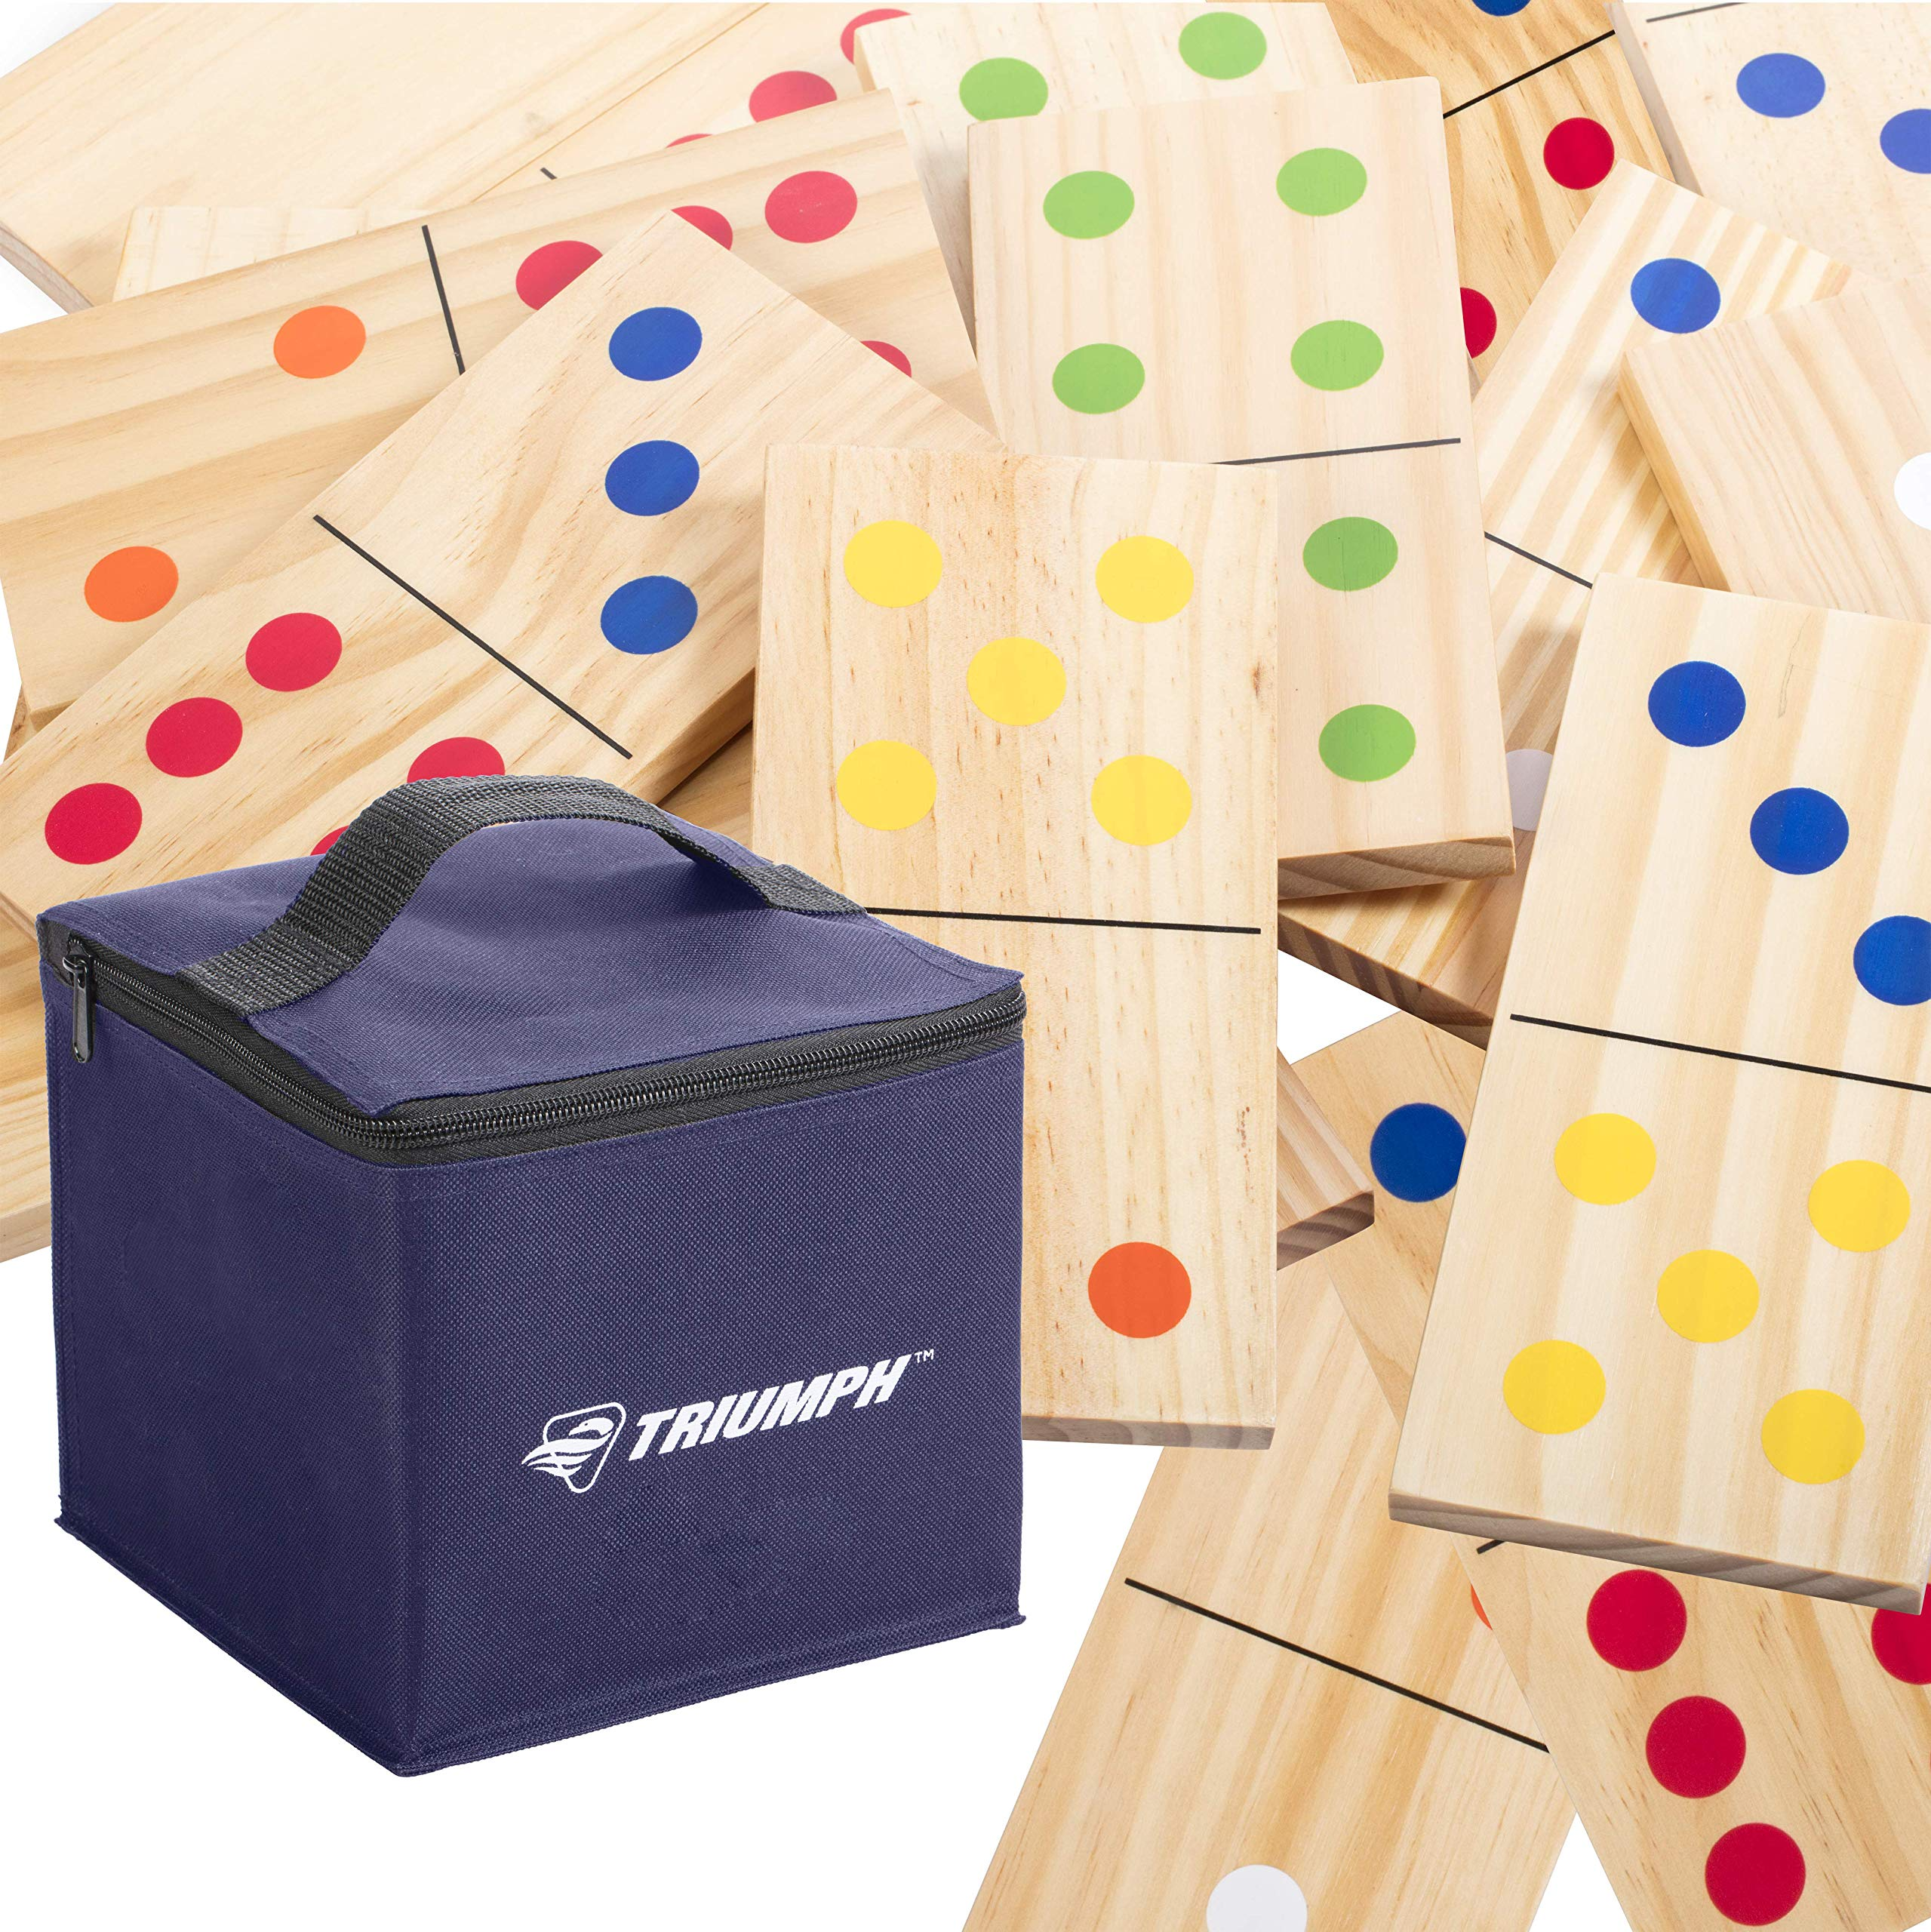 Triumph 28-Piece Wood Lawn Outdoor Large-Format Domino Set Includes Storage Carry Bag by Triumph Sports